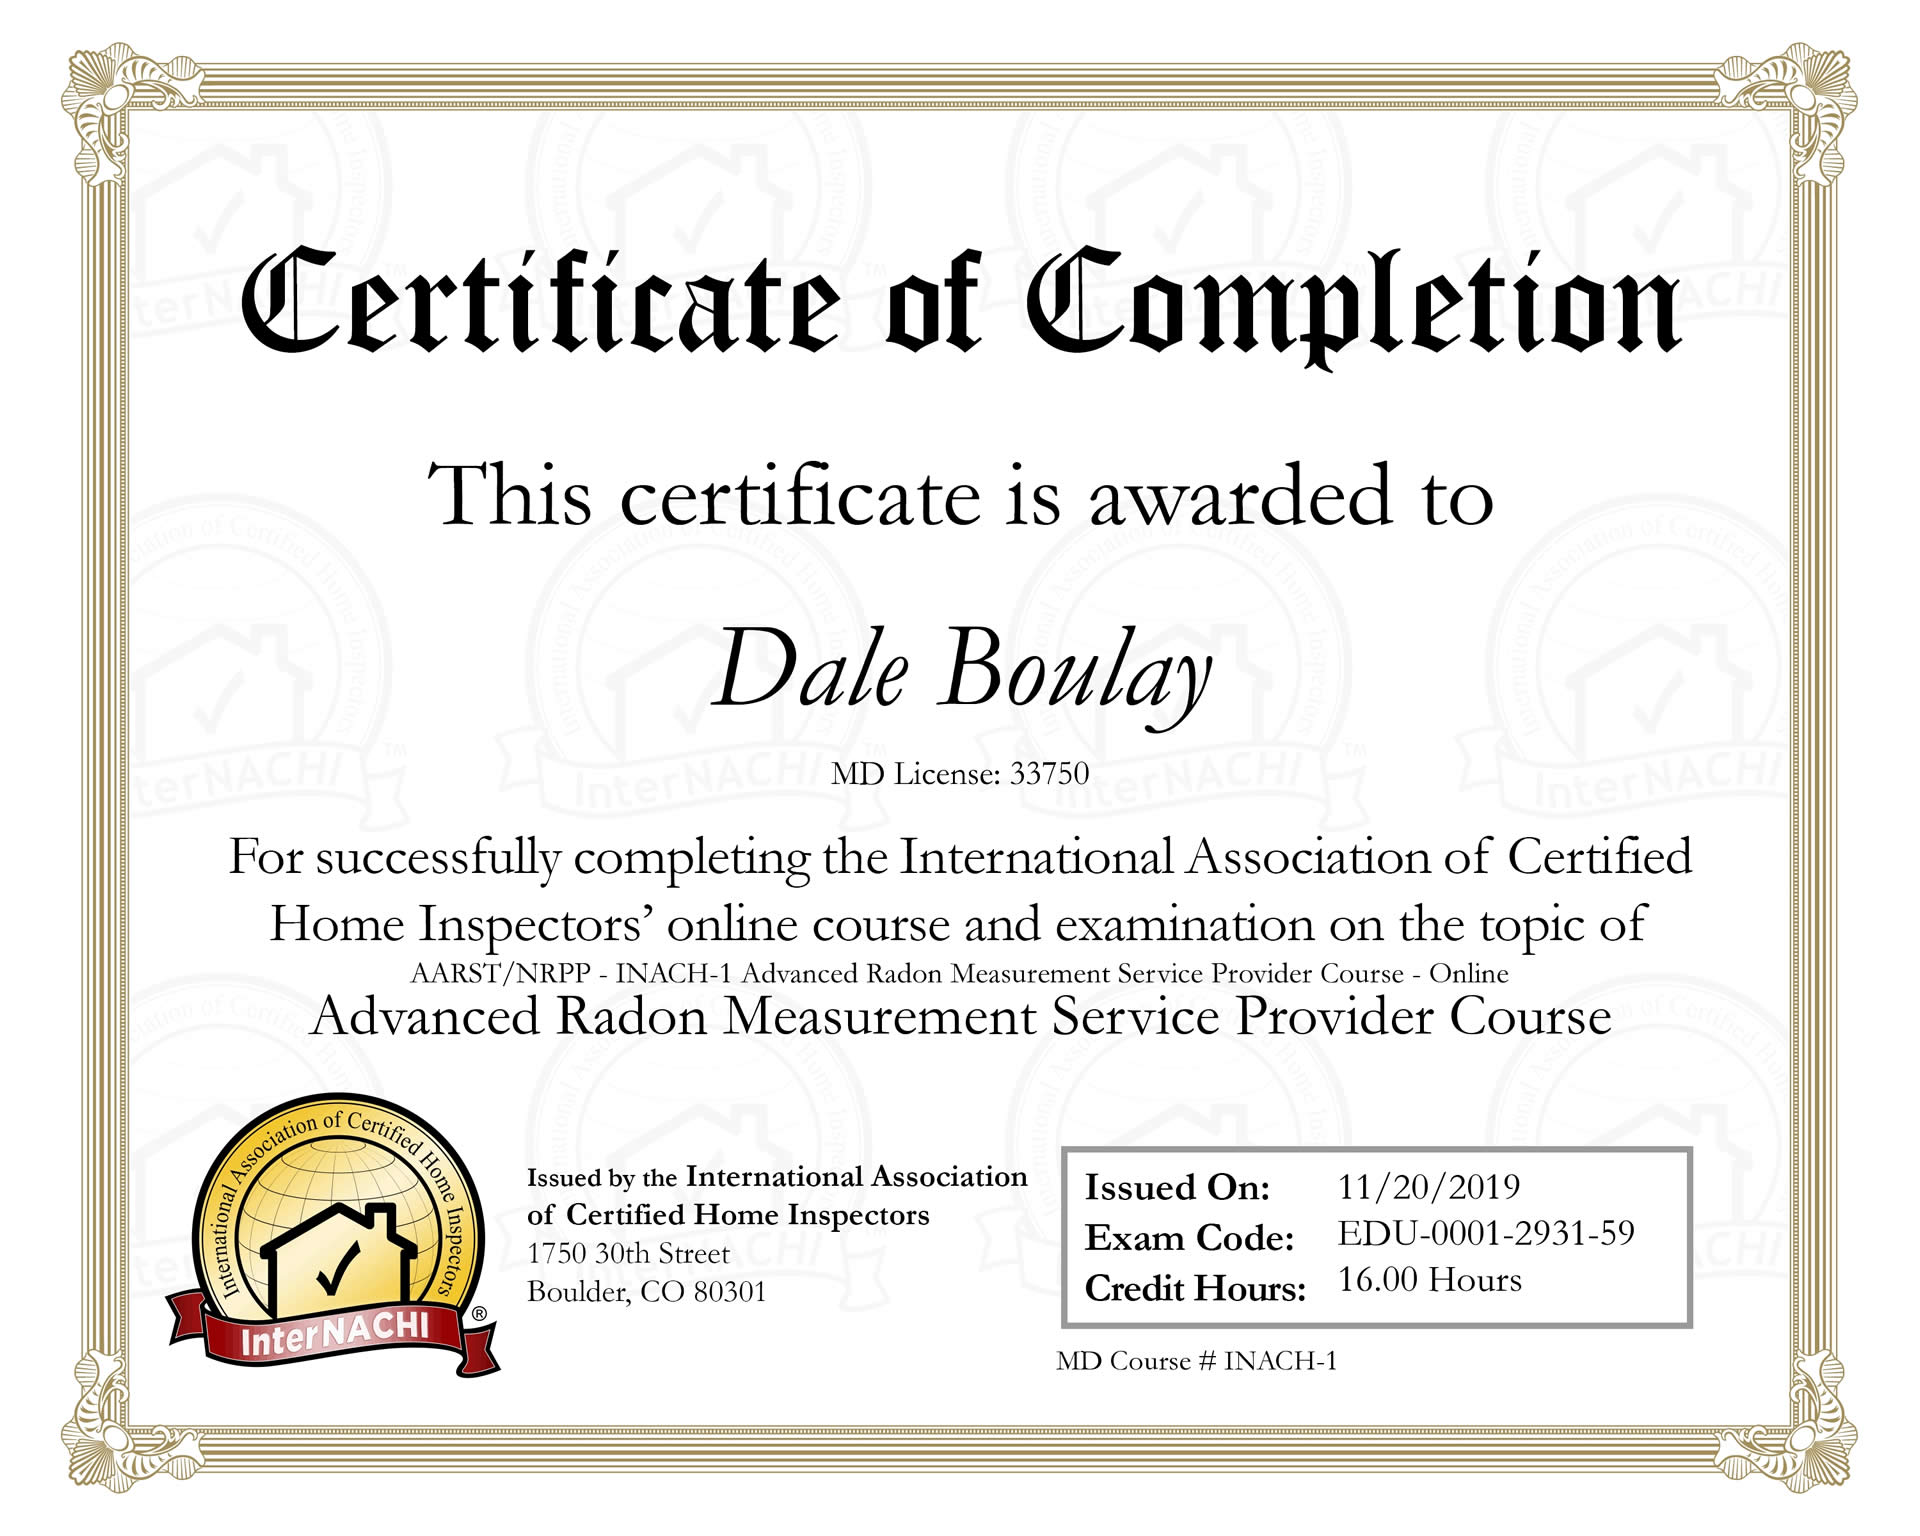 InterNACHI Certificate of Completion Maryland